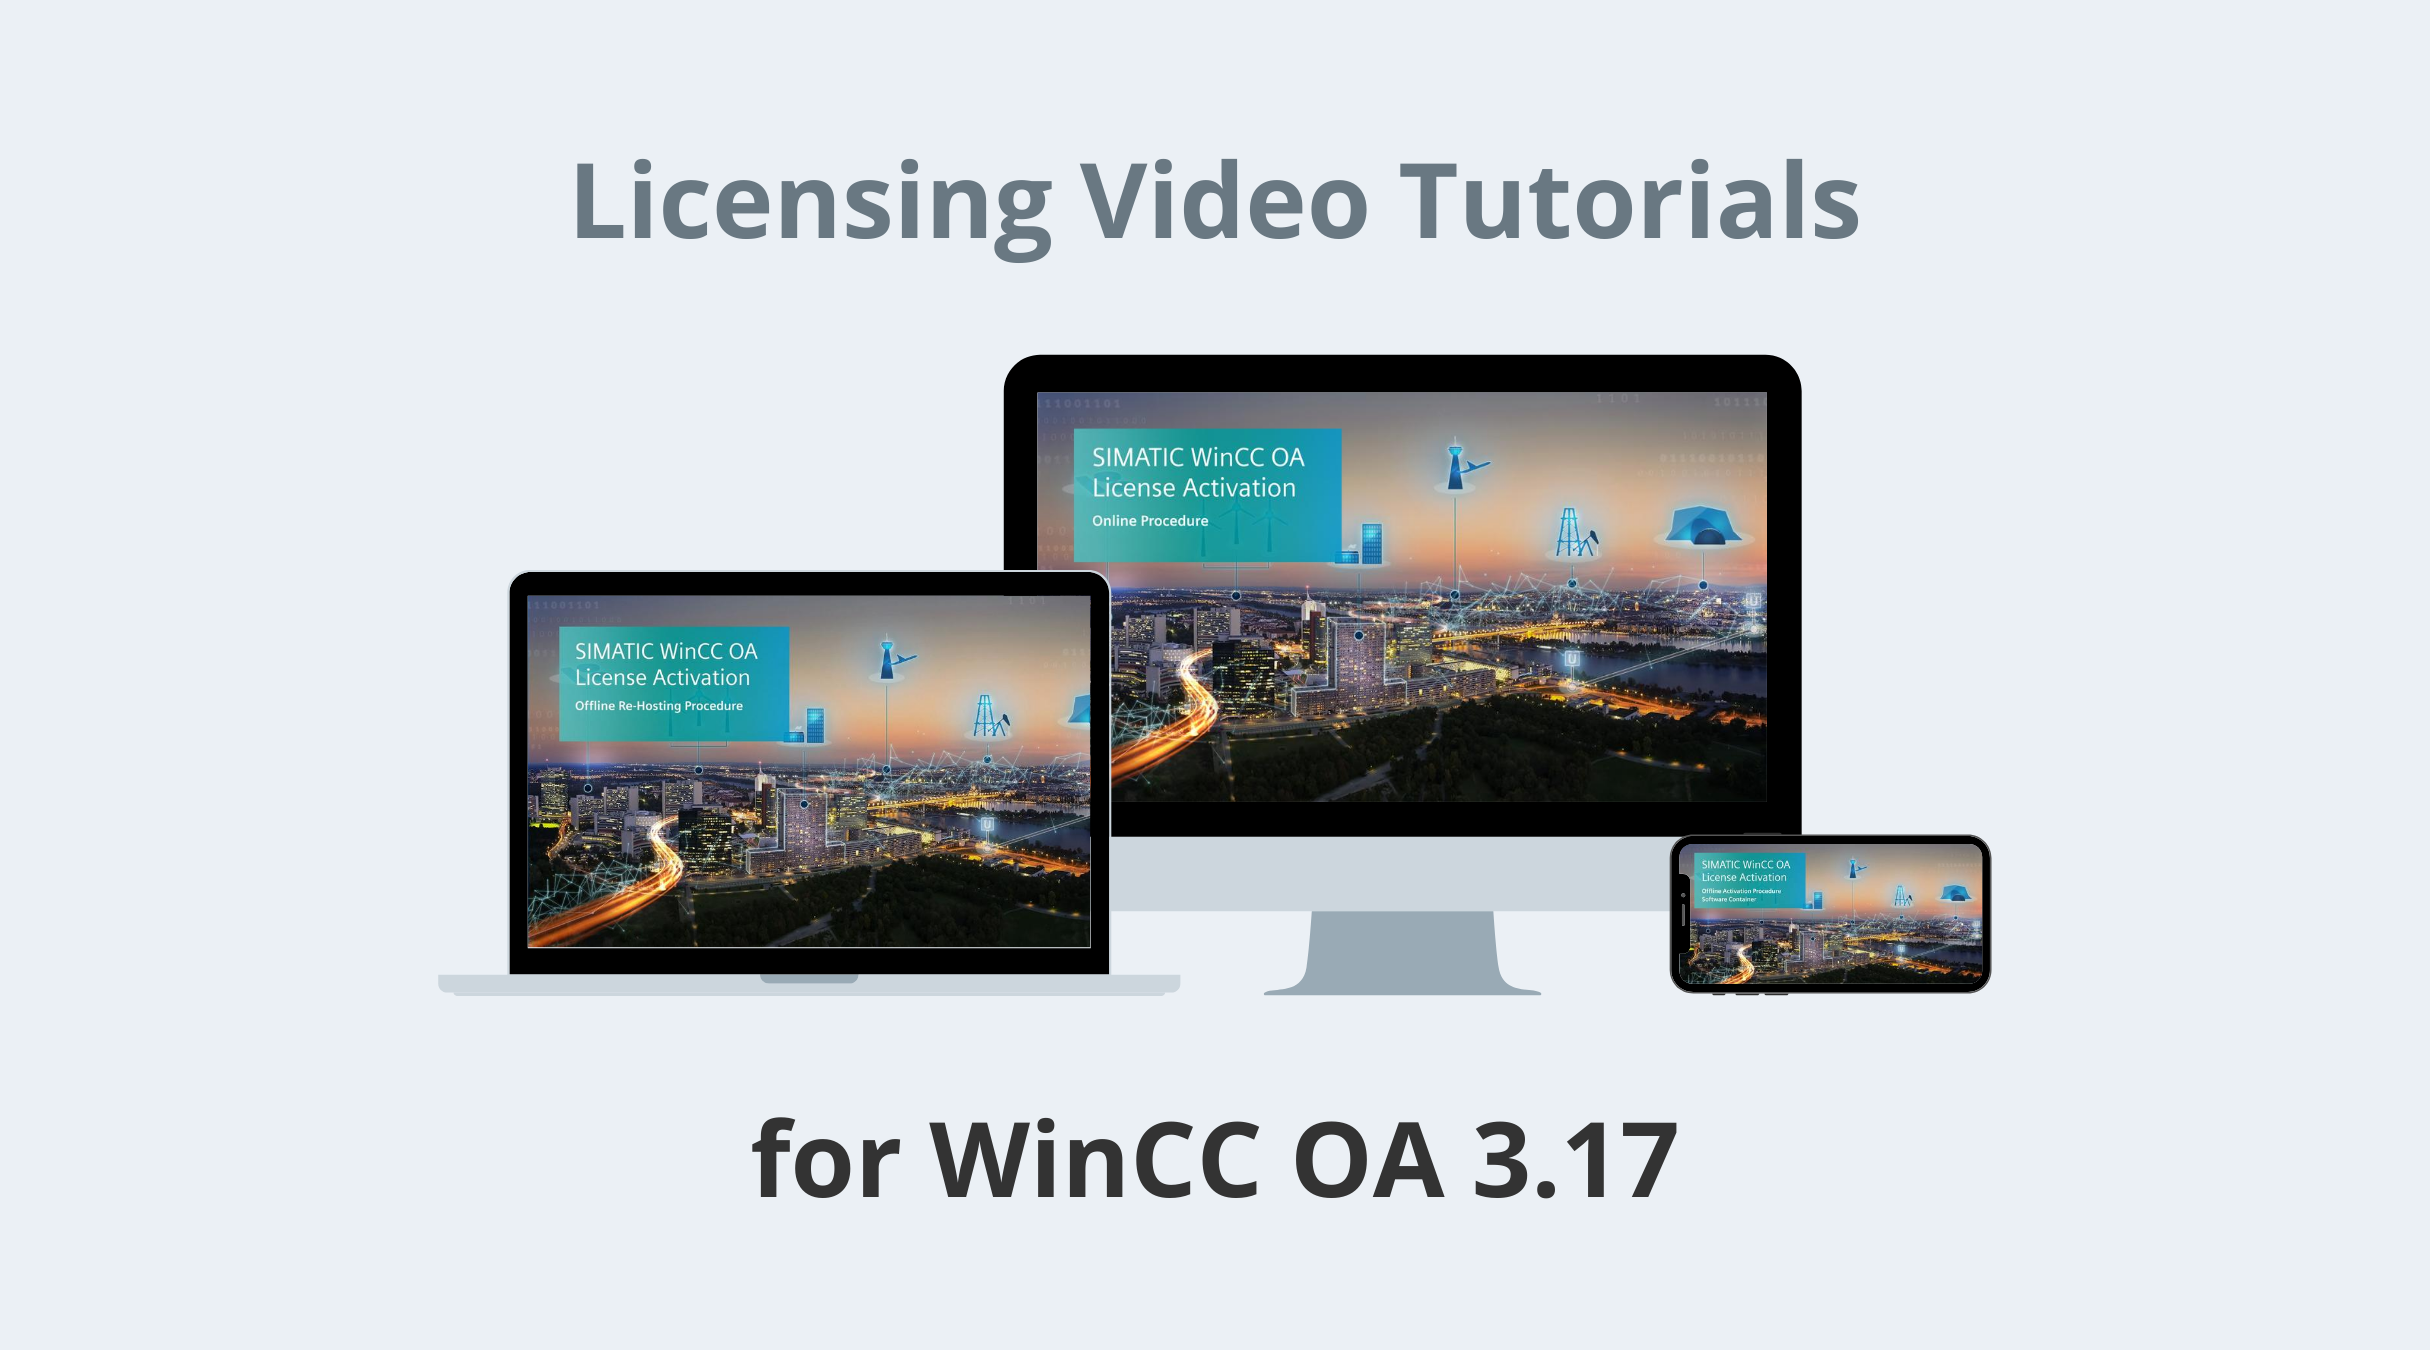 WinCC OA Video Tutorials